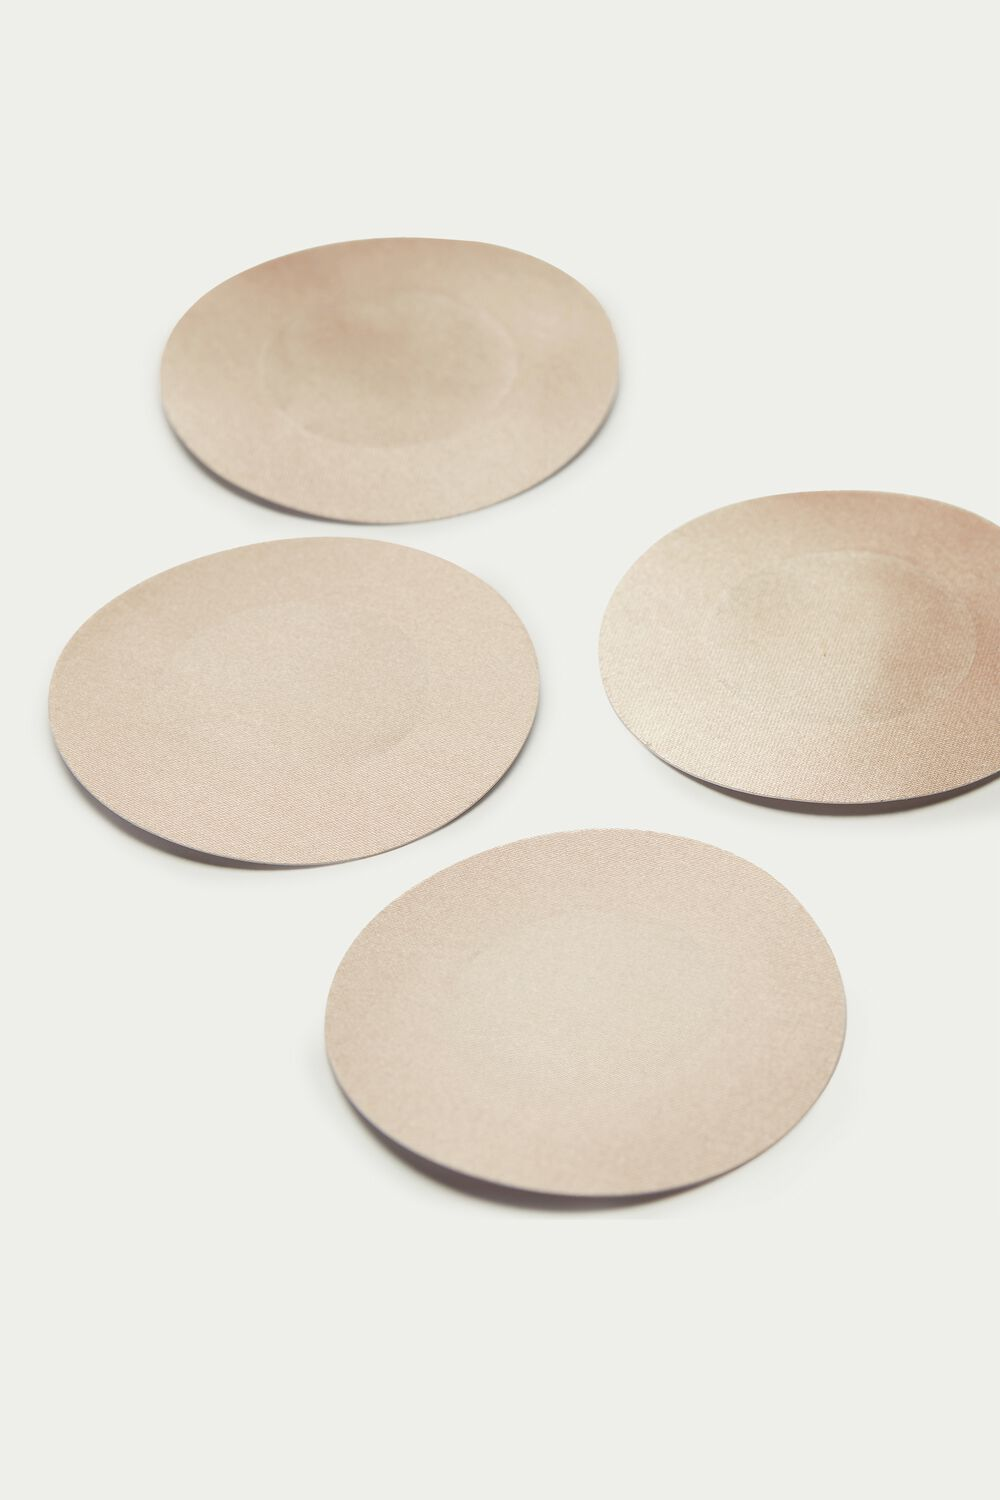 Auto-adhesive Silicone Nipple Covers